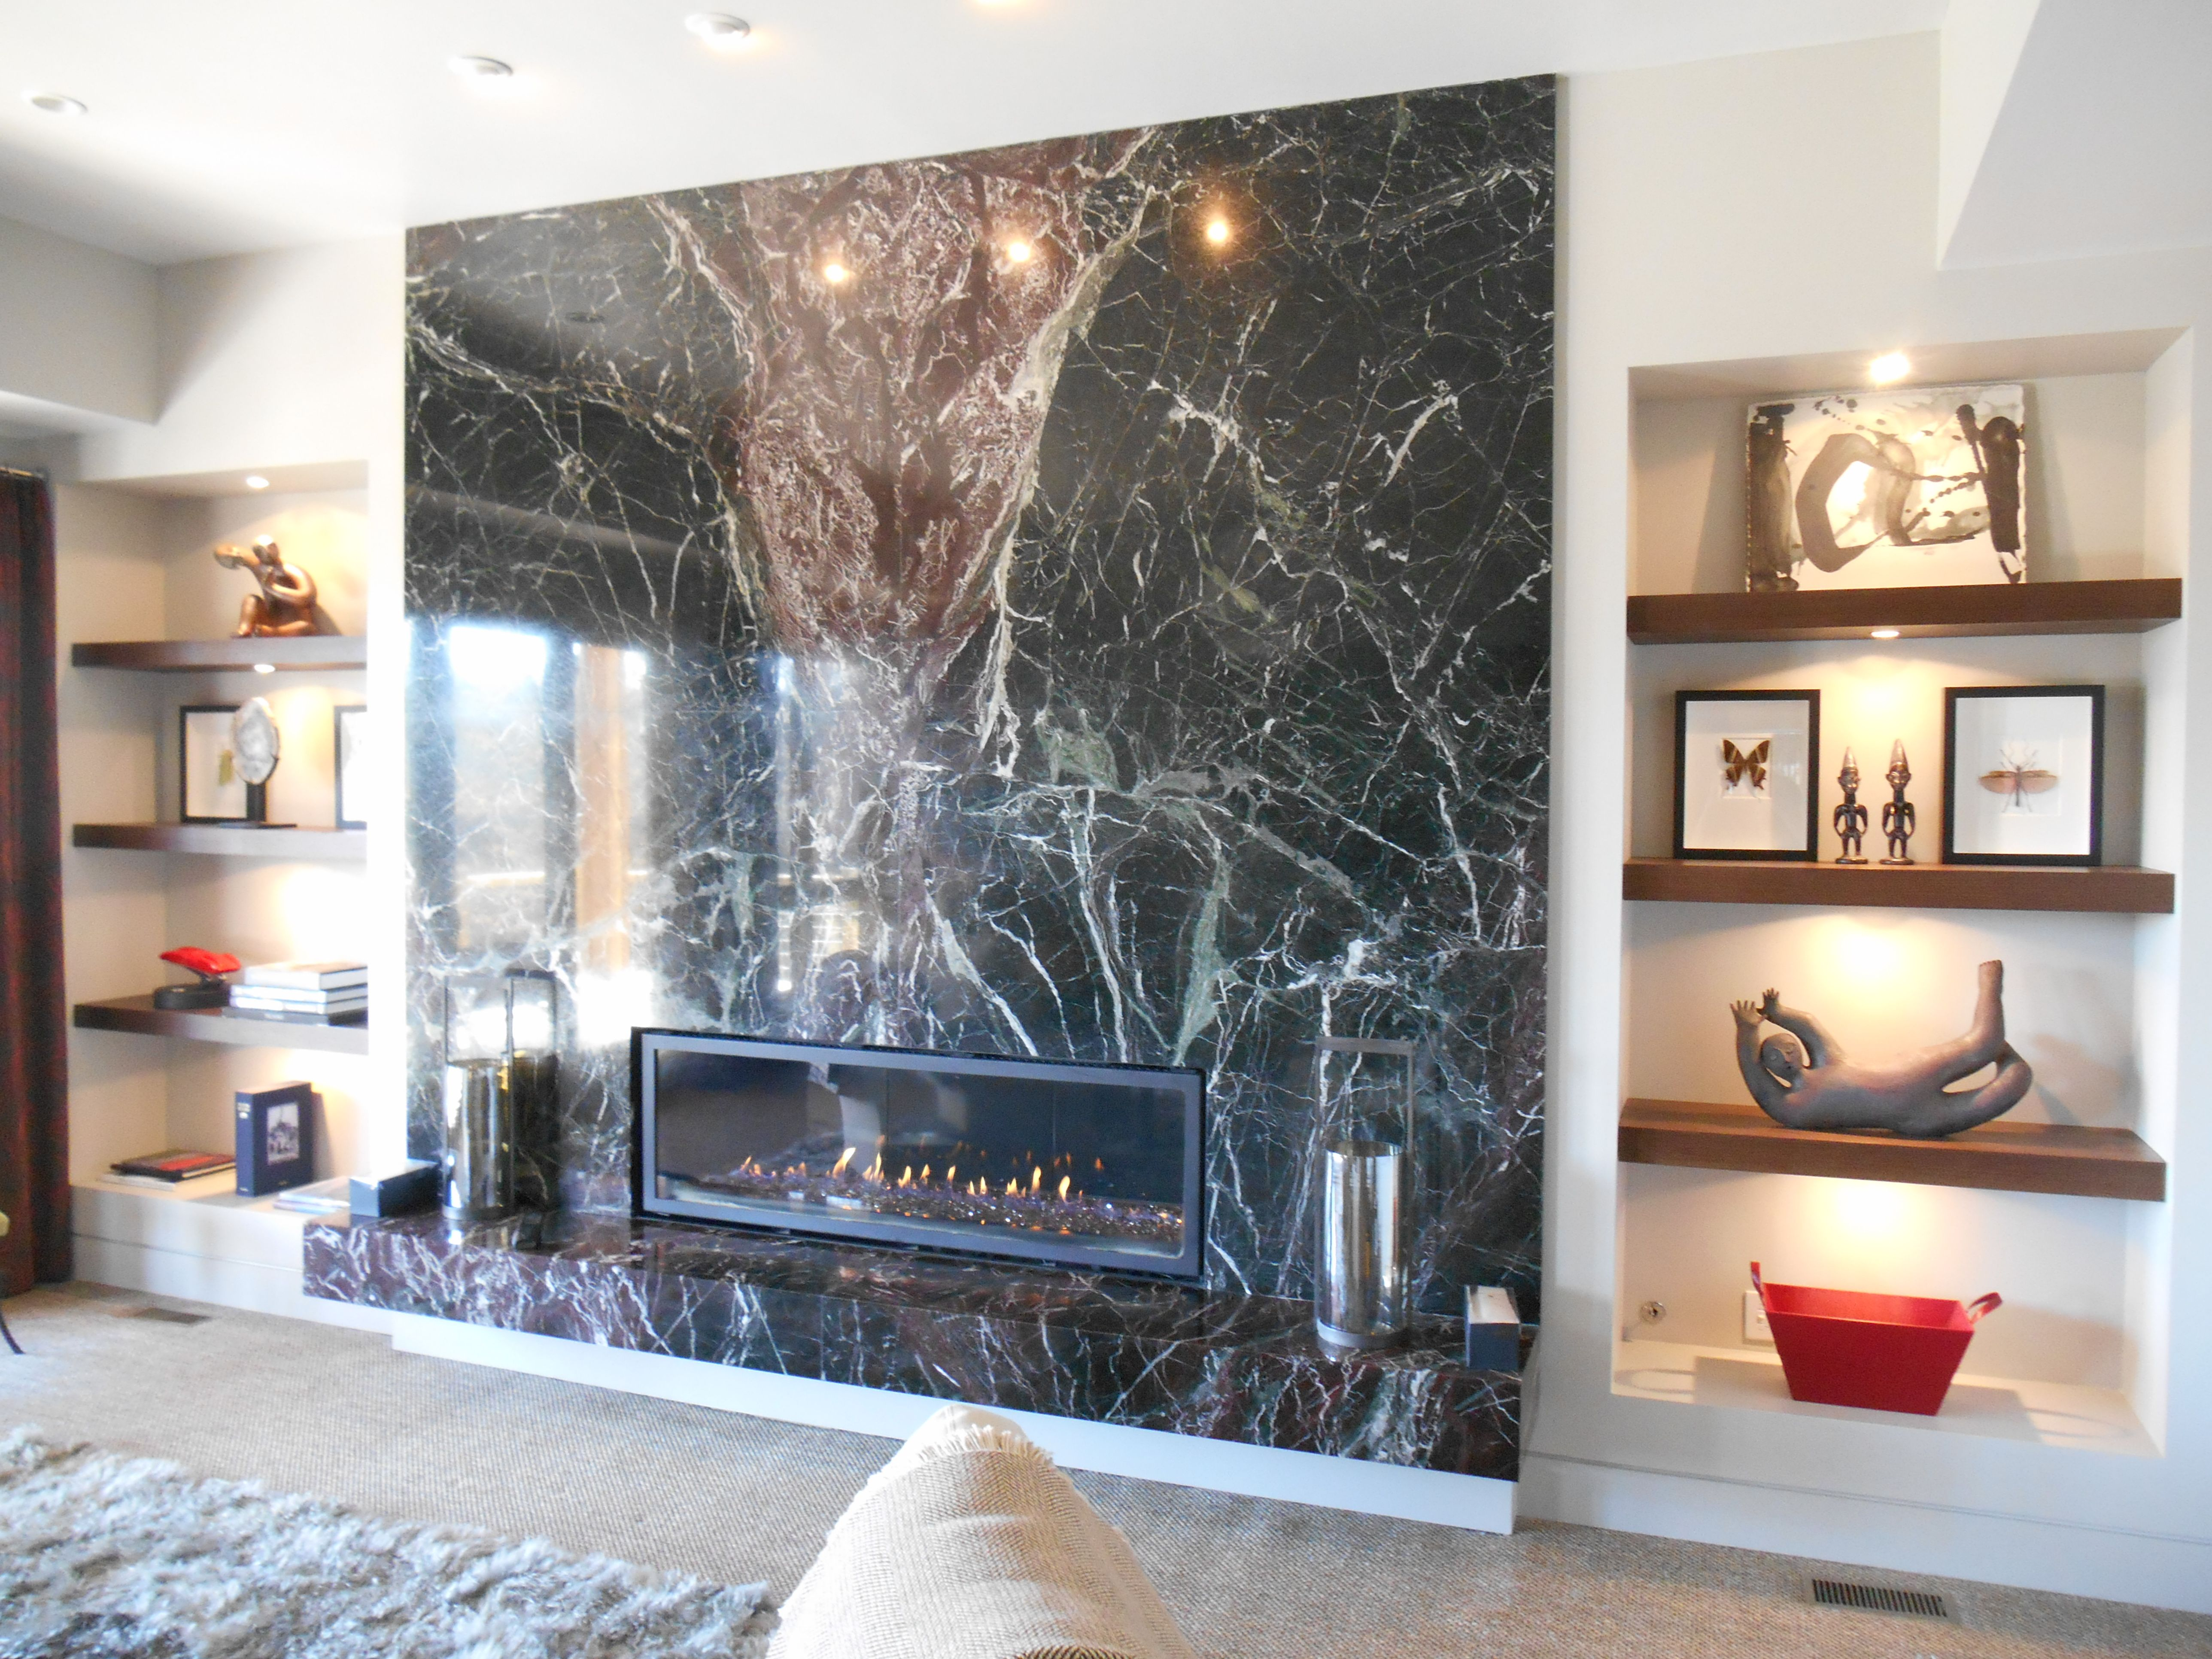 This Incredible Linear Fireplace Is Highlighted With A Dramatic